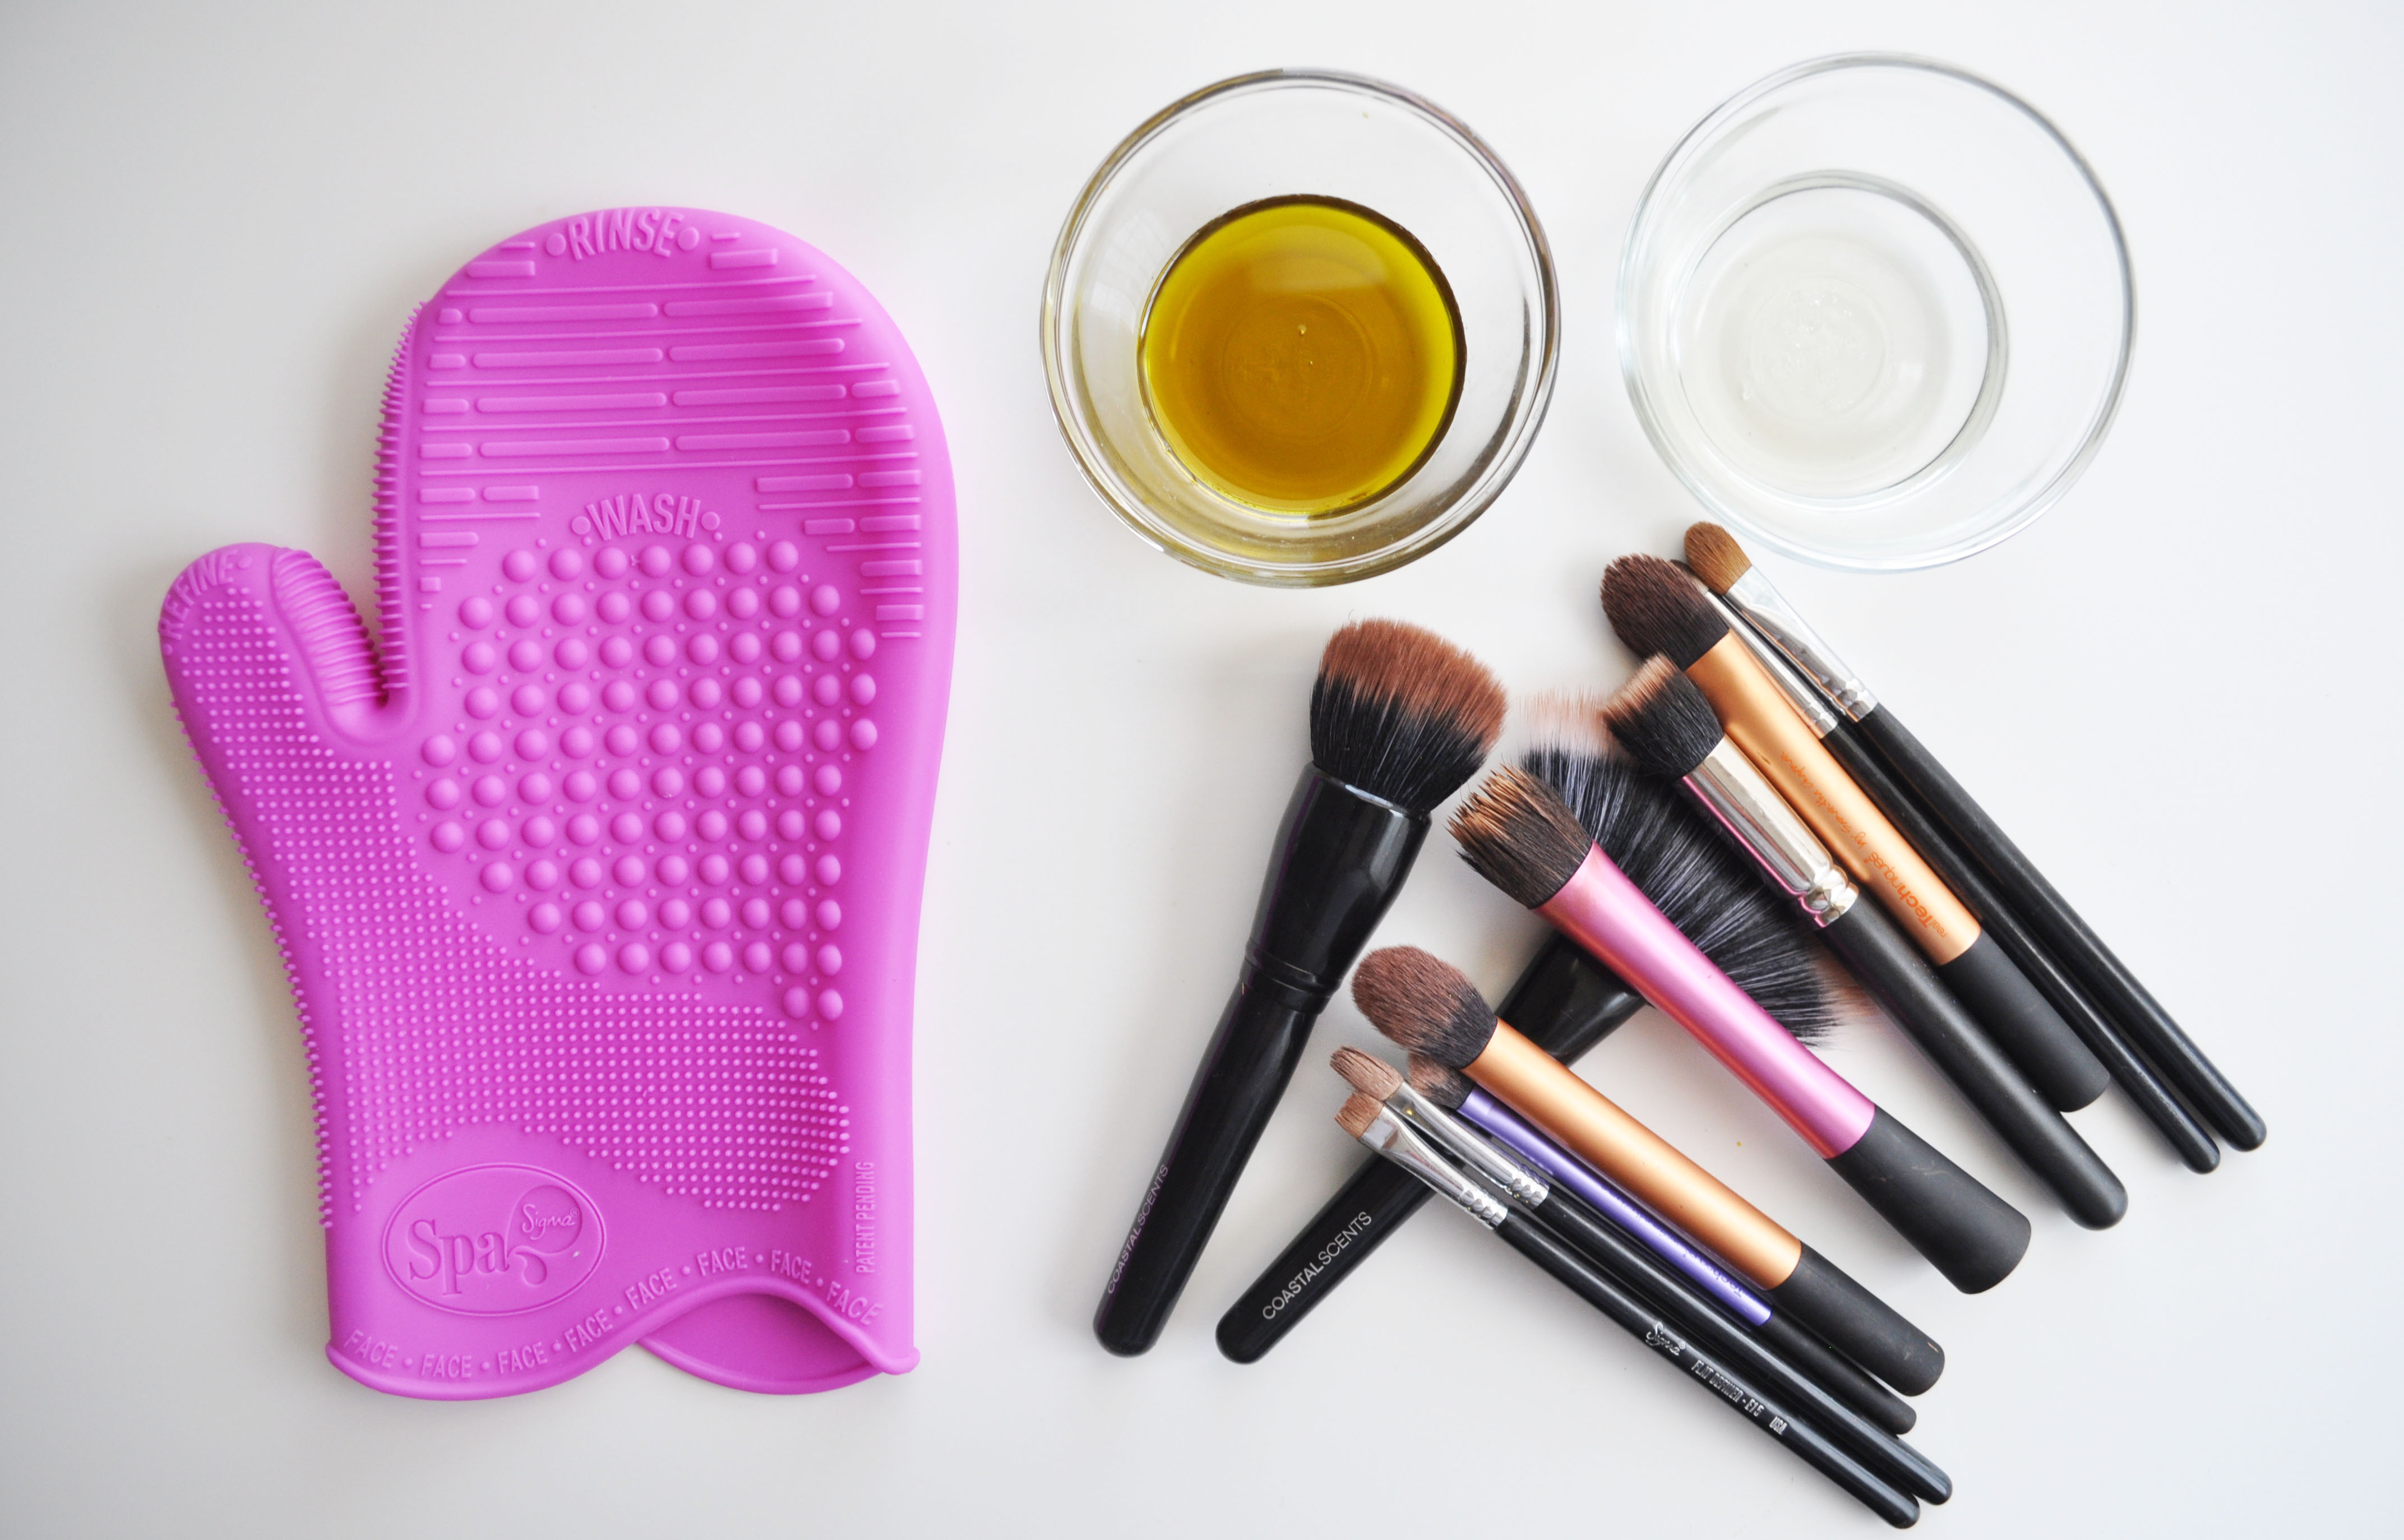 How To Clean MakeUp Brushes | MakeUp Brushes Cleaning Guide